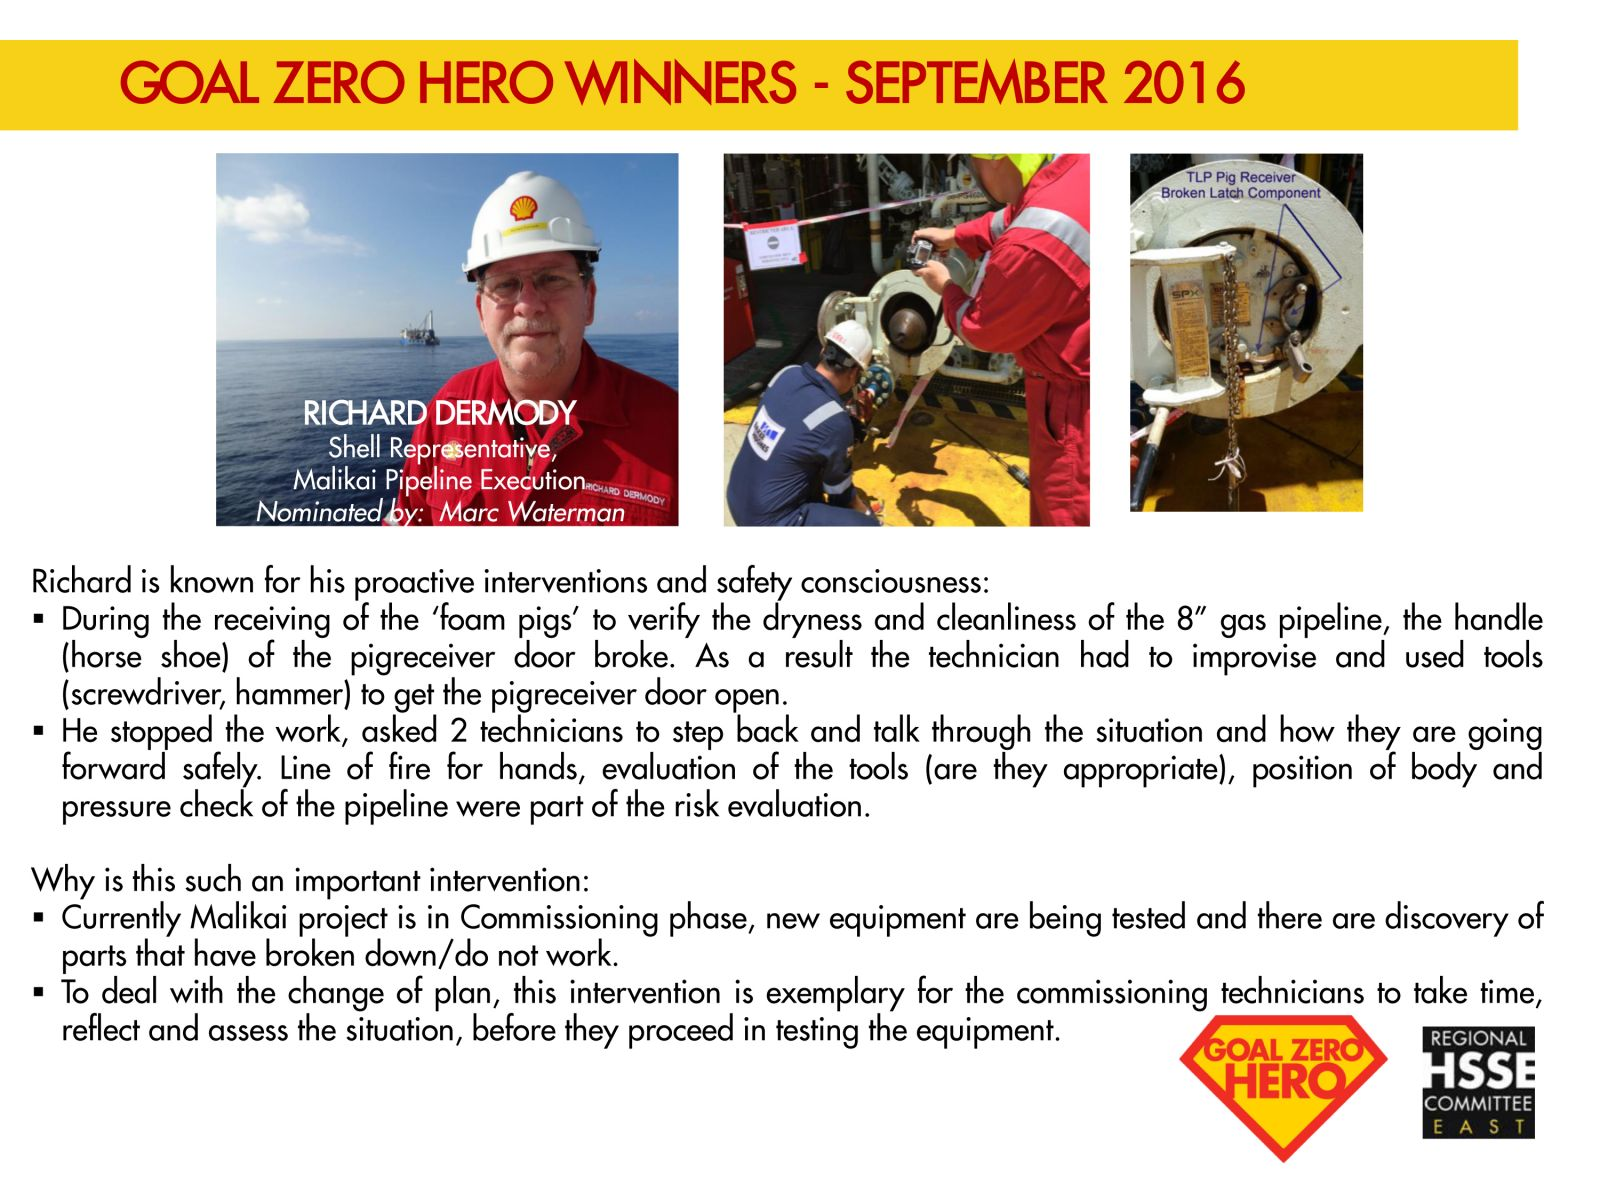 Featuring Richard Dermody: Goal Zeo Hero Winners - September 2016